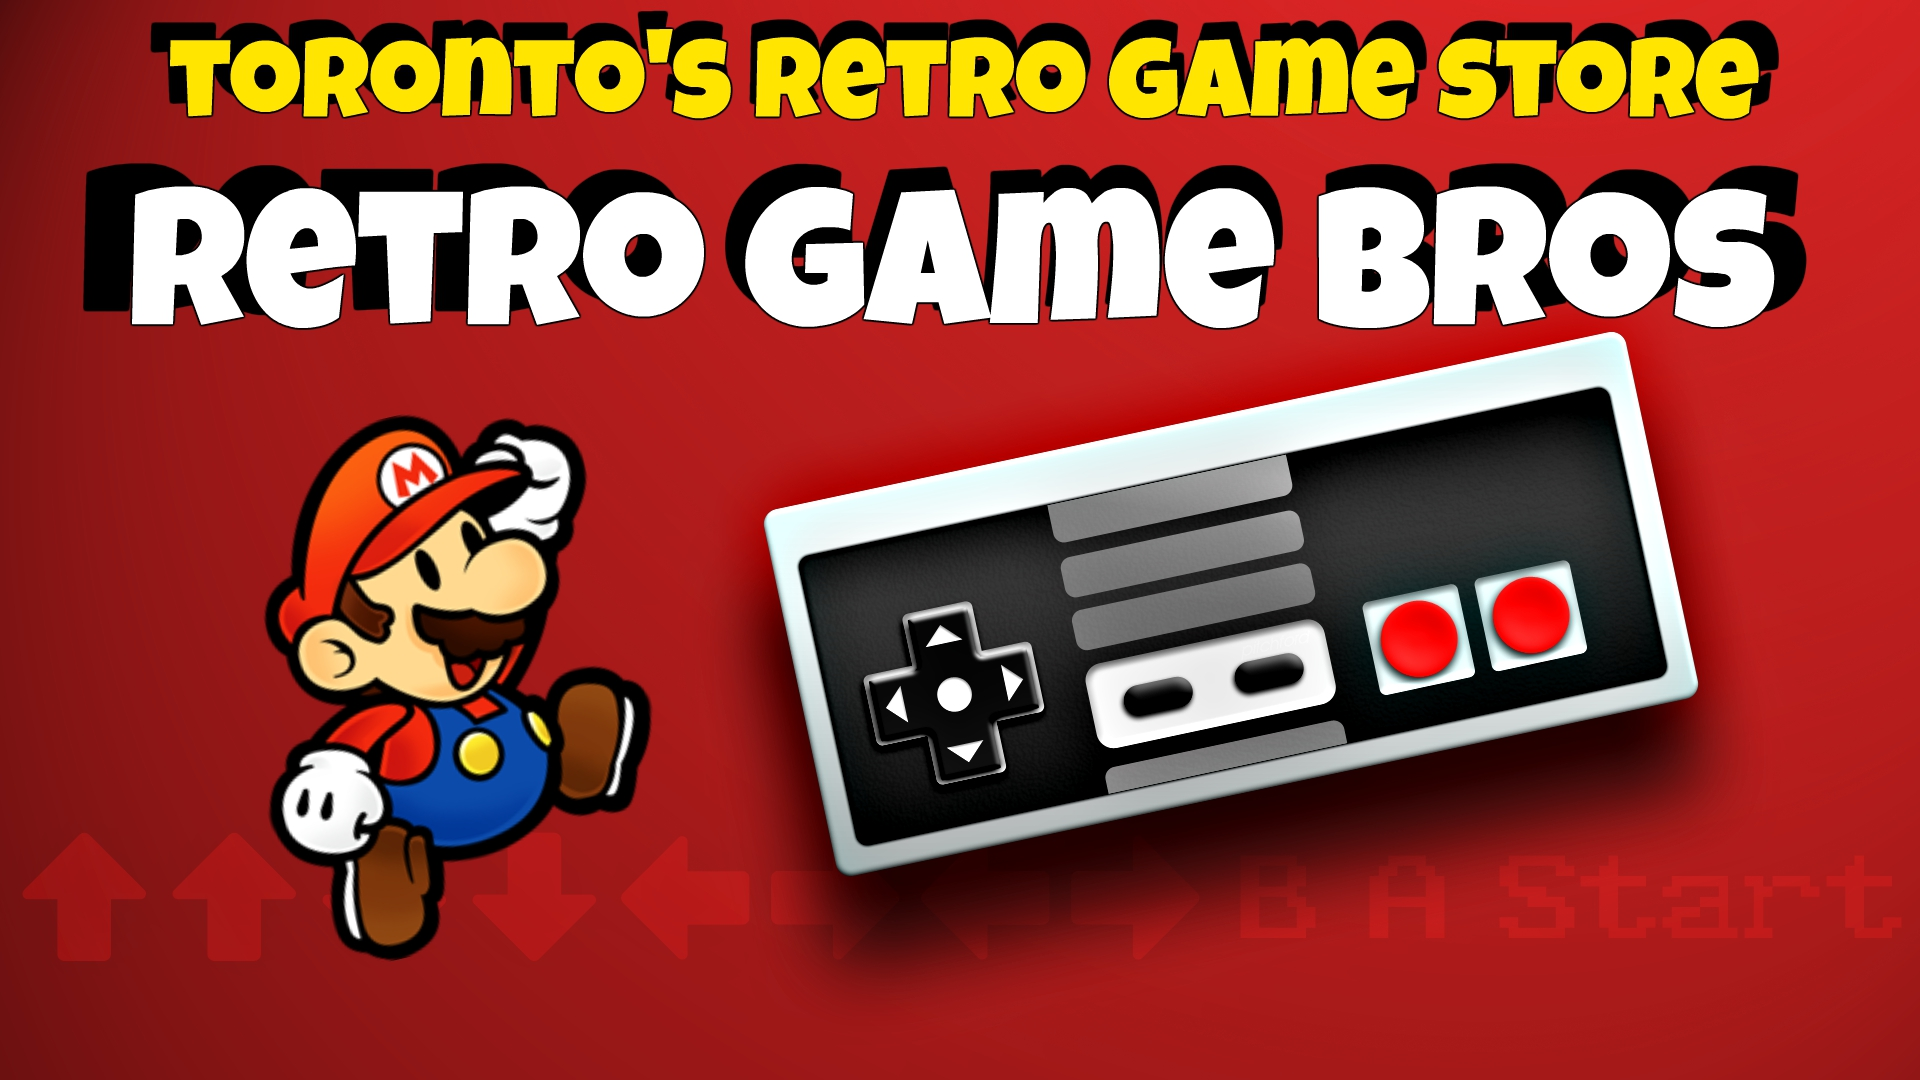 Retro Game Bros